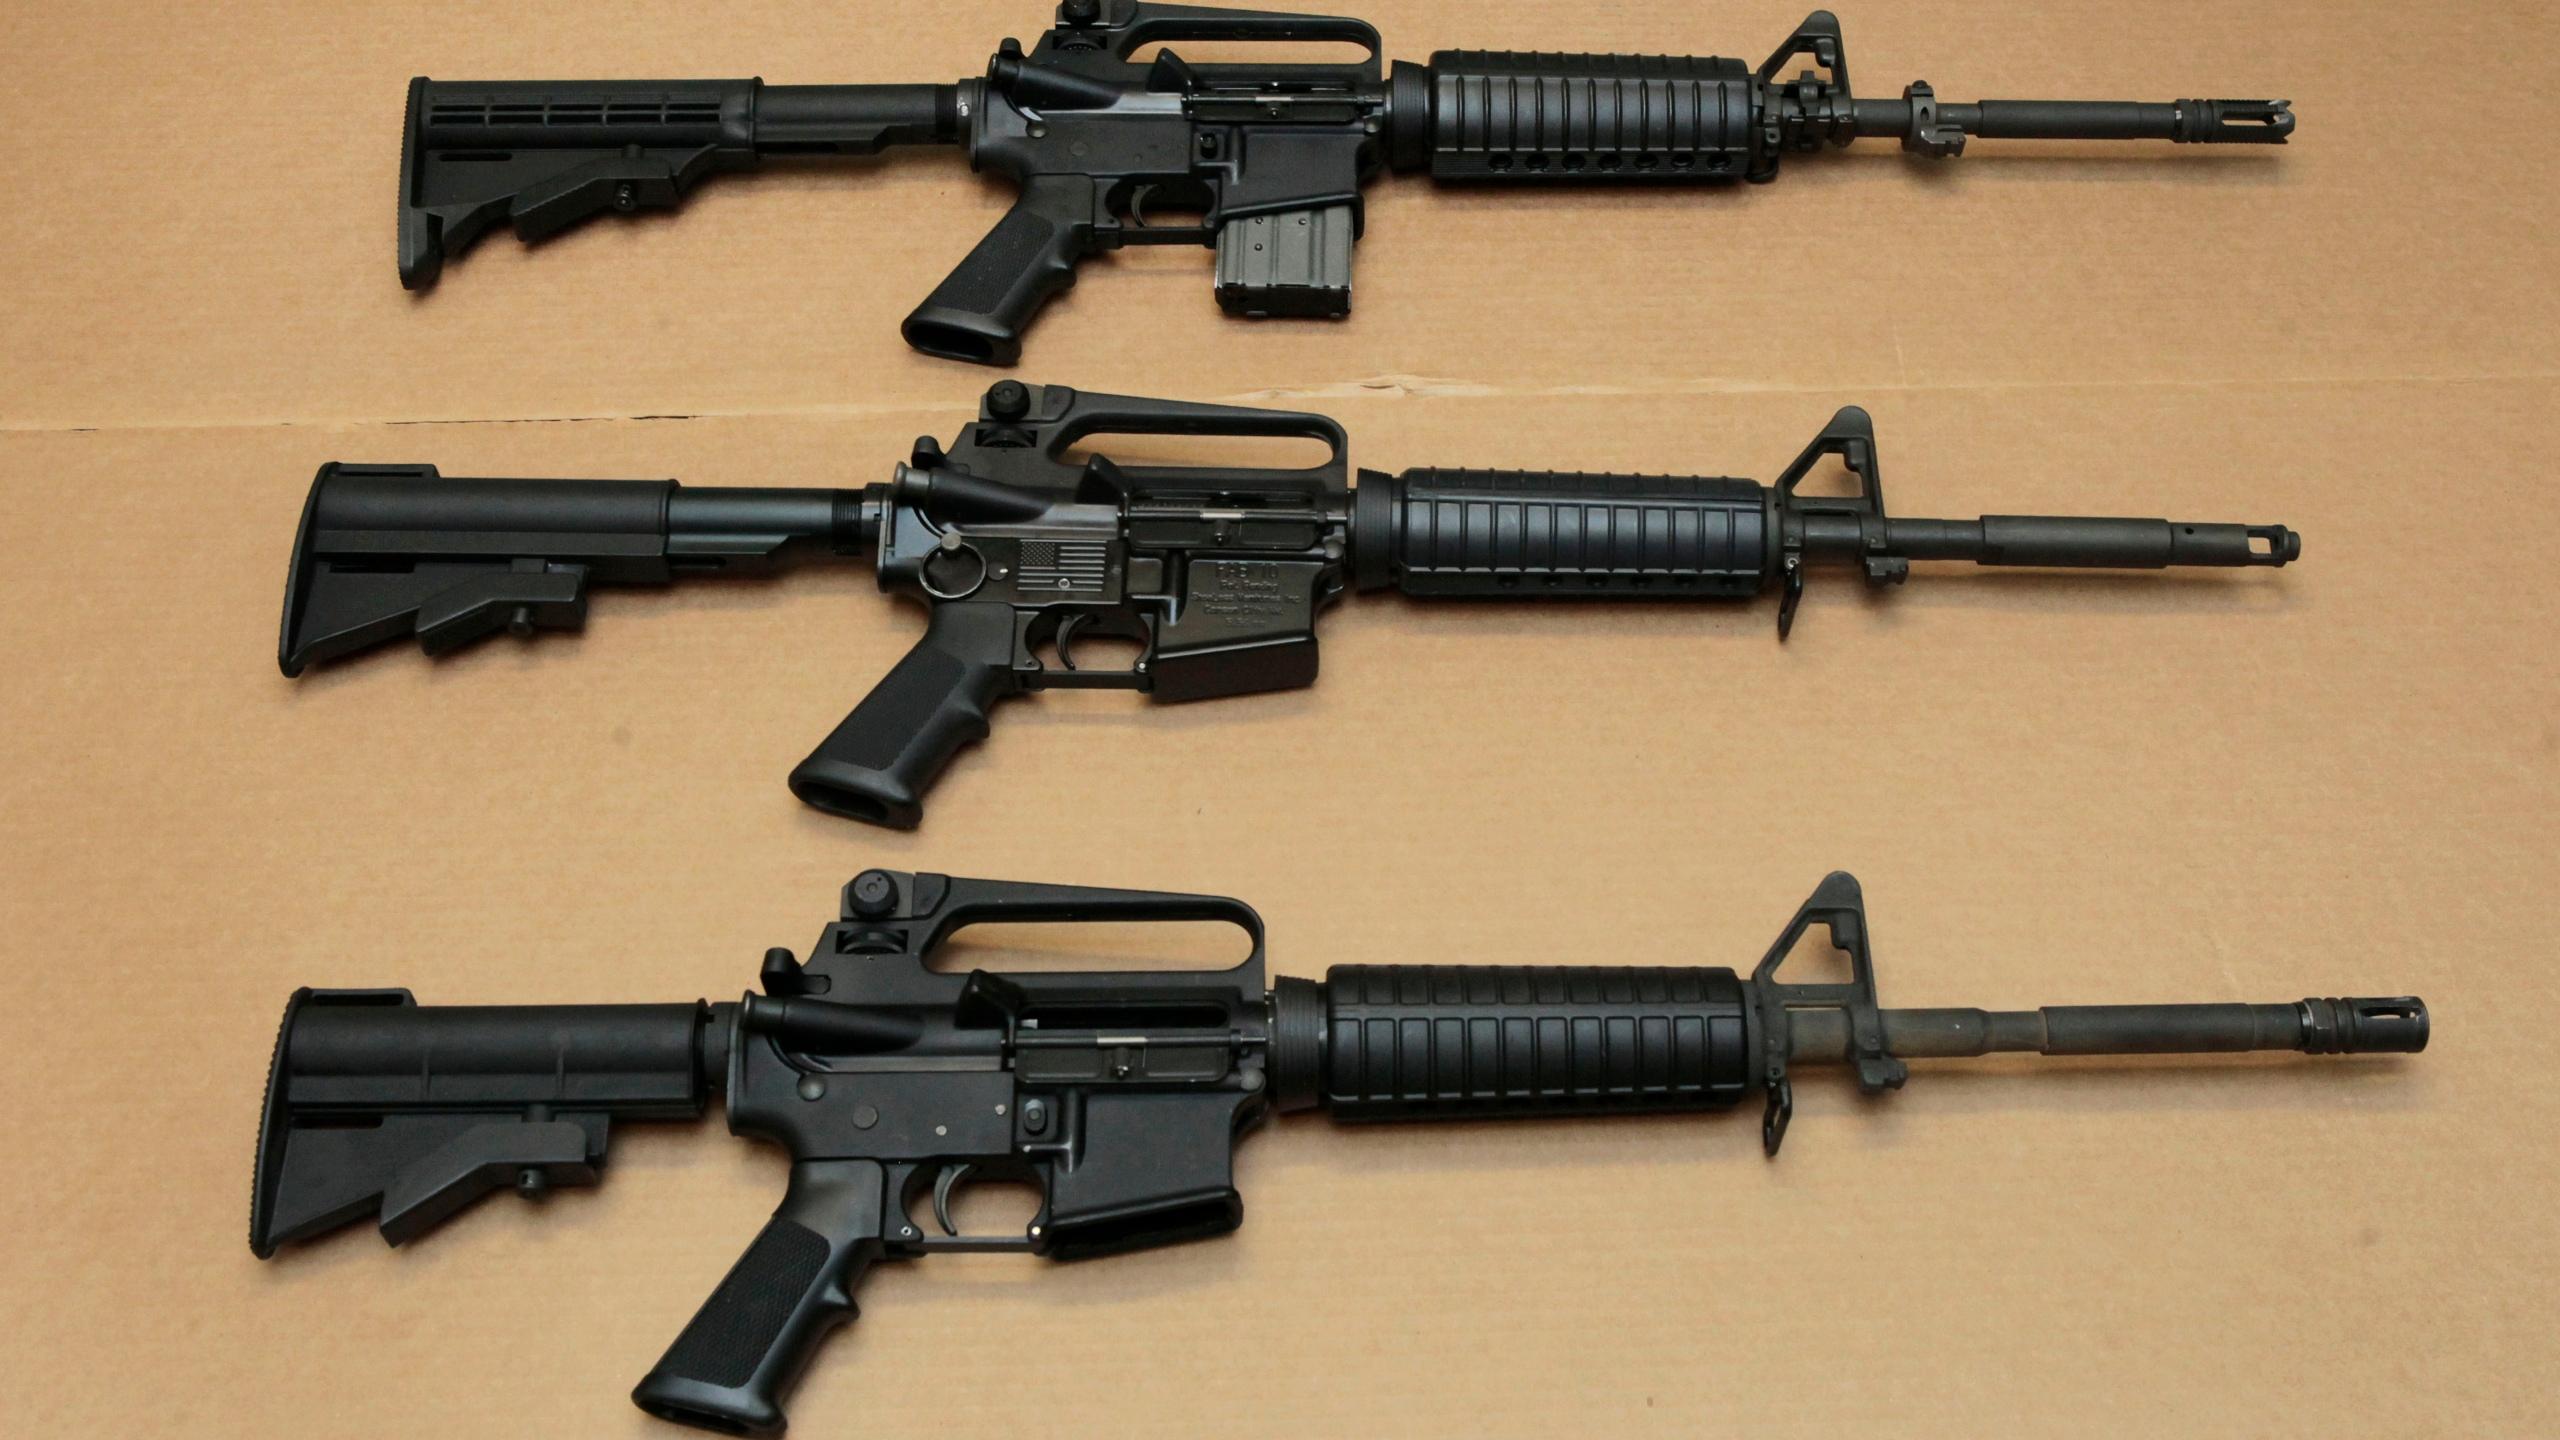 In this Aug. 15, 2012 file photo, three variations of the AR-15 assault rifle are displayed at the California Department of Justice in Sacramento. (Rich Pedroncelli/Associated Press)